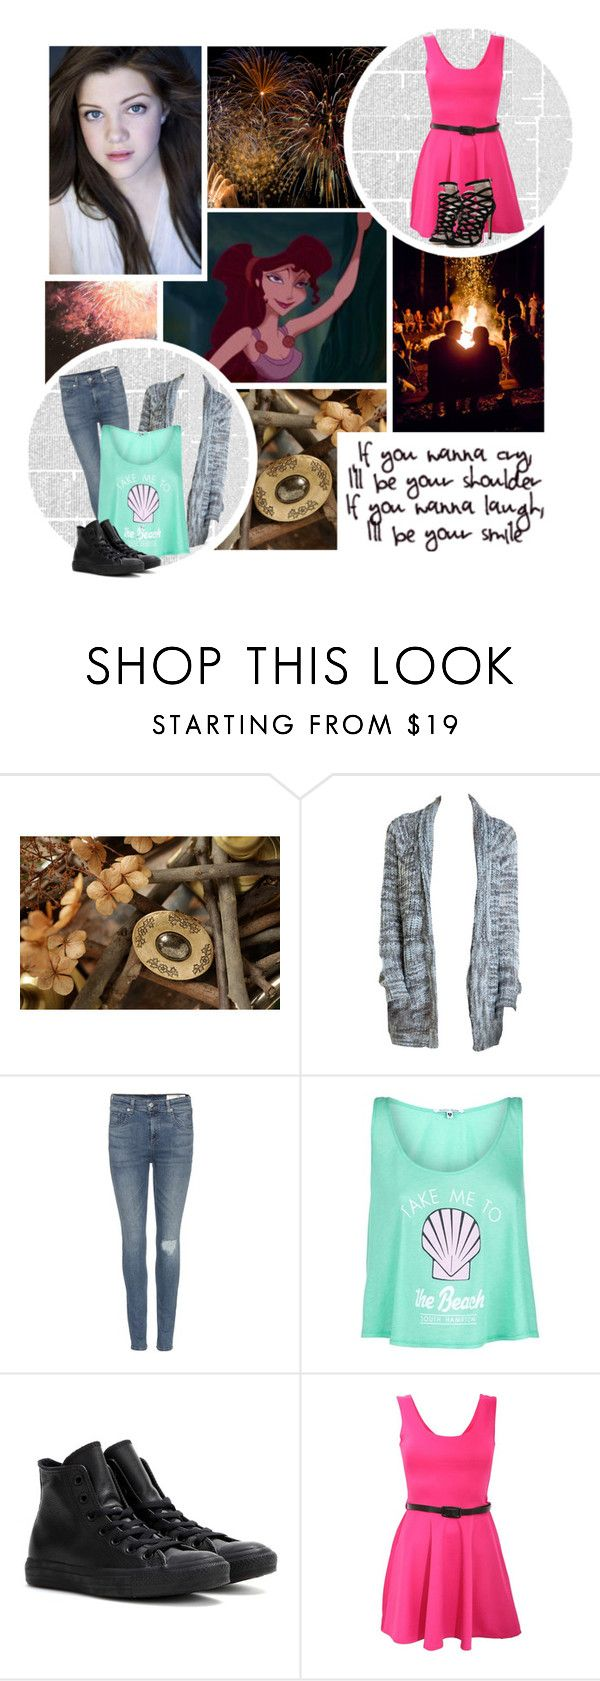 """If you wanna laugh, i will be your smile"" by nika-love ❤ liked on Polyvore featuring rag & bone, Wildfox, Converse and Pilot"